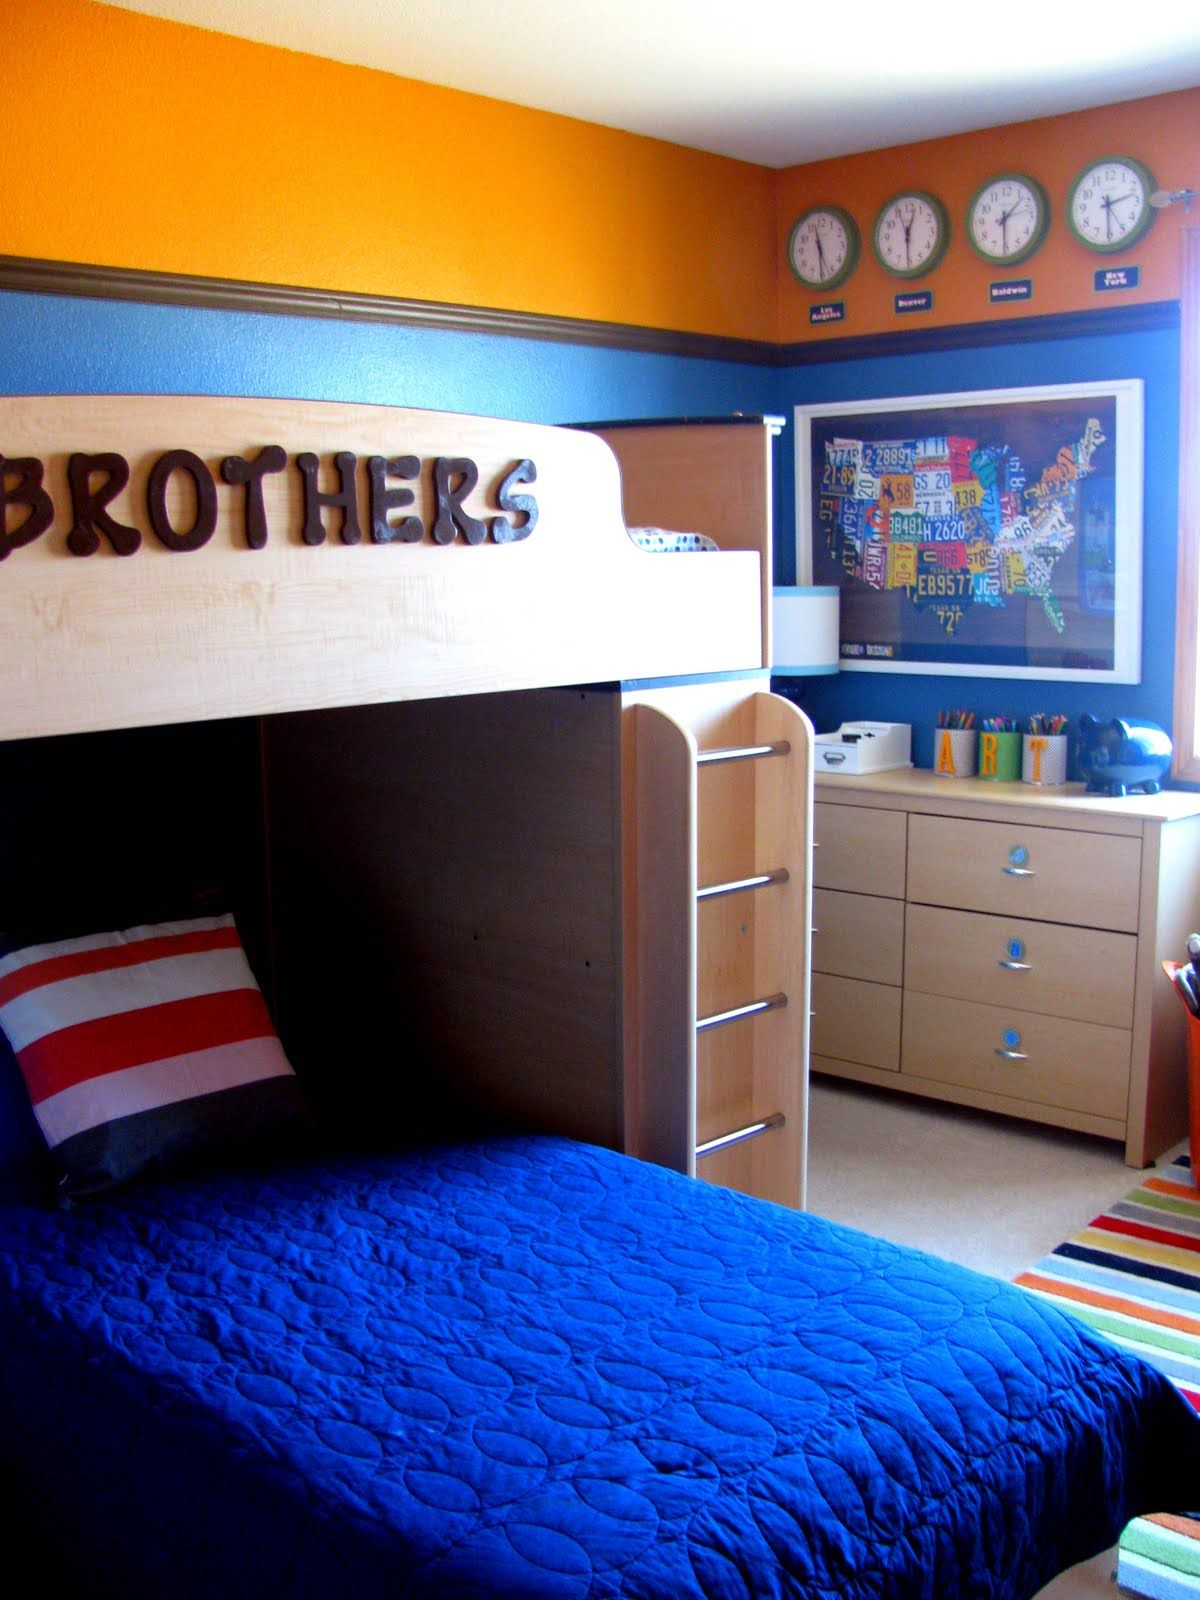 20 Awesome Boys Bedroom Ideas With Simple Tips To Make Them